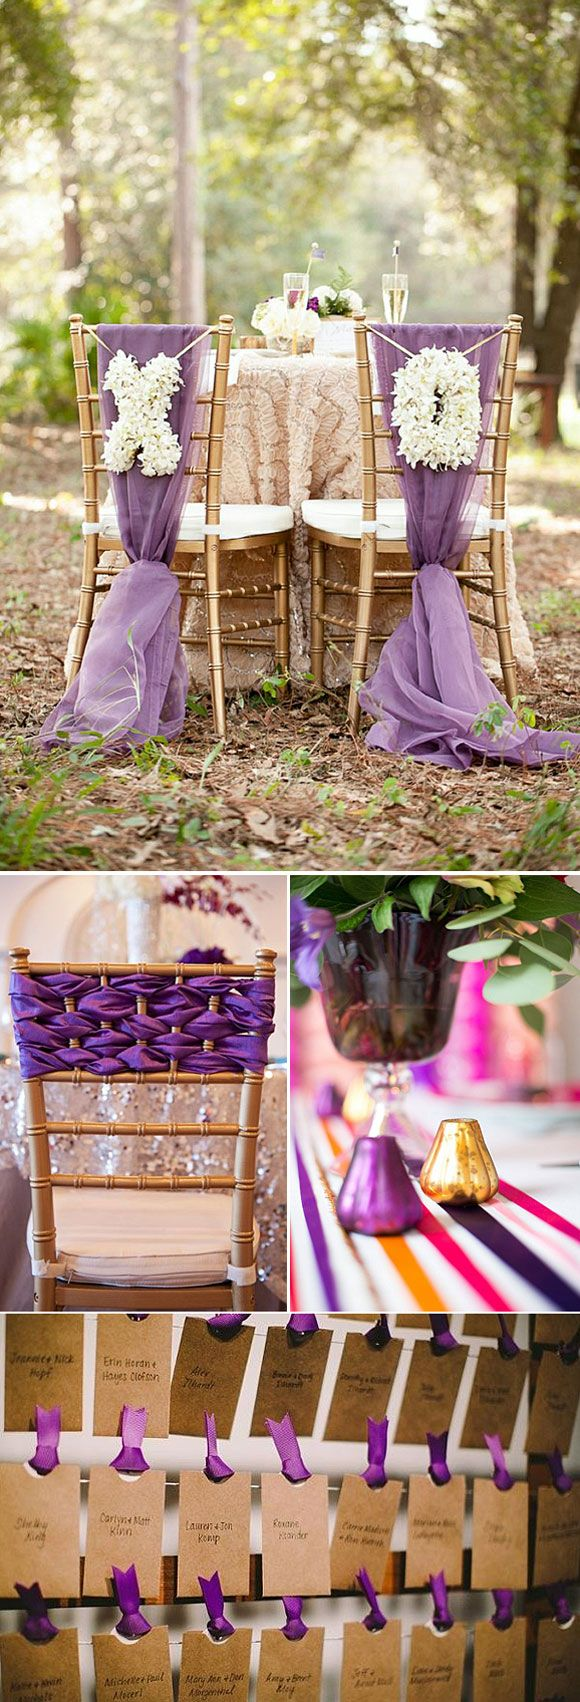 Radiant Orchid – Decoracion para bodas en color violeta